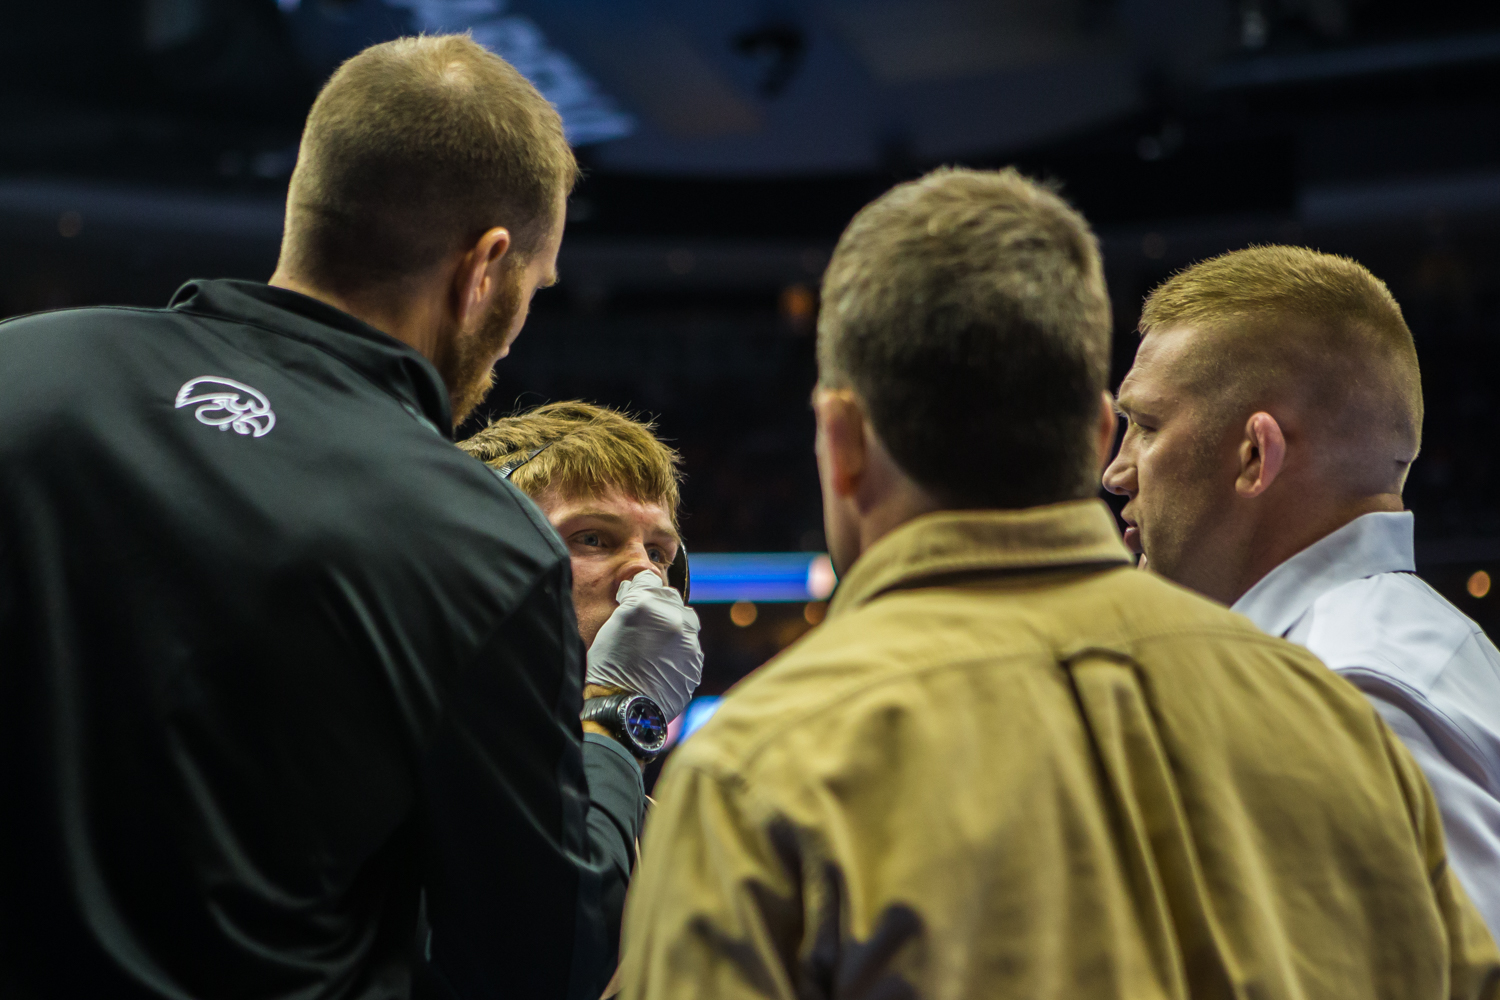 Iowa%E2%80%99s+141-pound+Max+Murin+gets+checked+by+medical+staff+during+the+fourth+session+of+the+2019+NCAA+D1+Wrestling+Championships+at+PPG+Paints+Arena+in+Pittsburgh%2C+PA+on+Friday%2C+March+22%2C+2019.+Red+won+by+decision%2C+4-1.